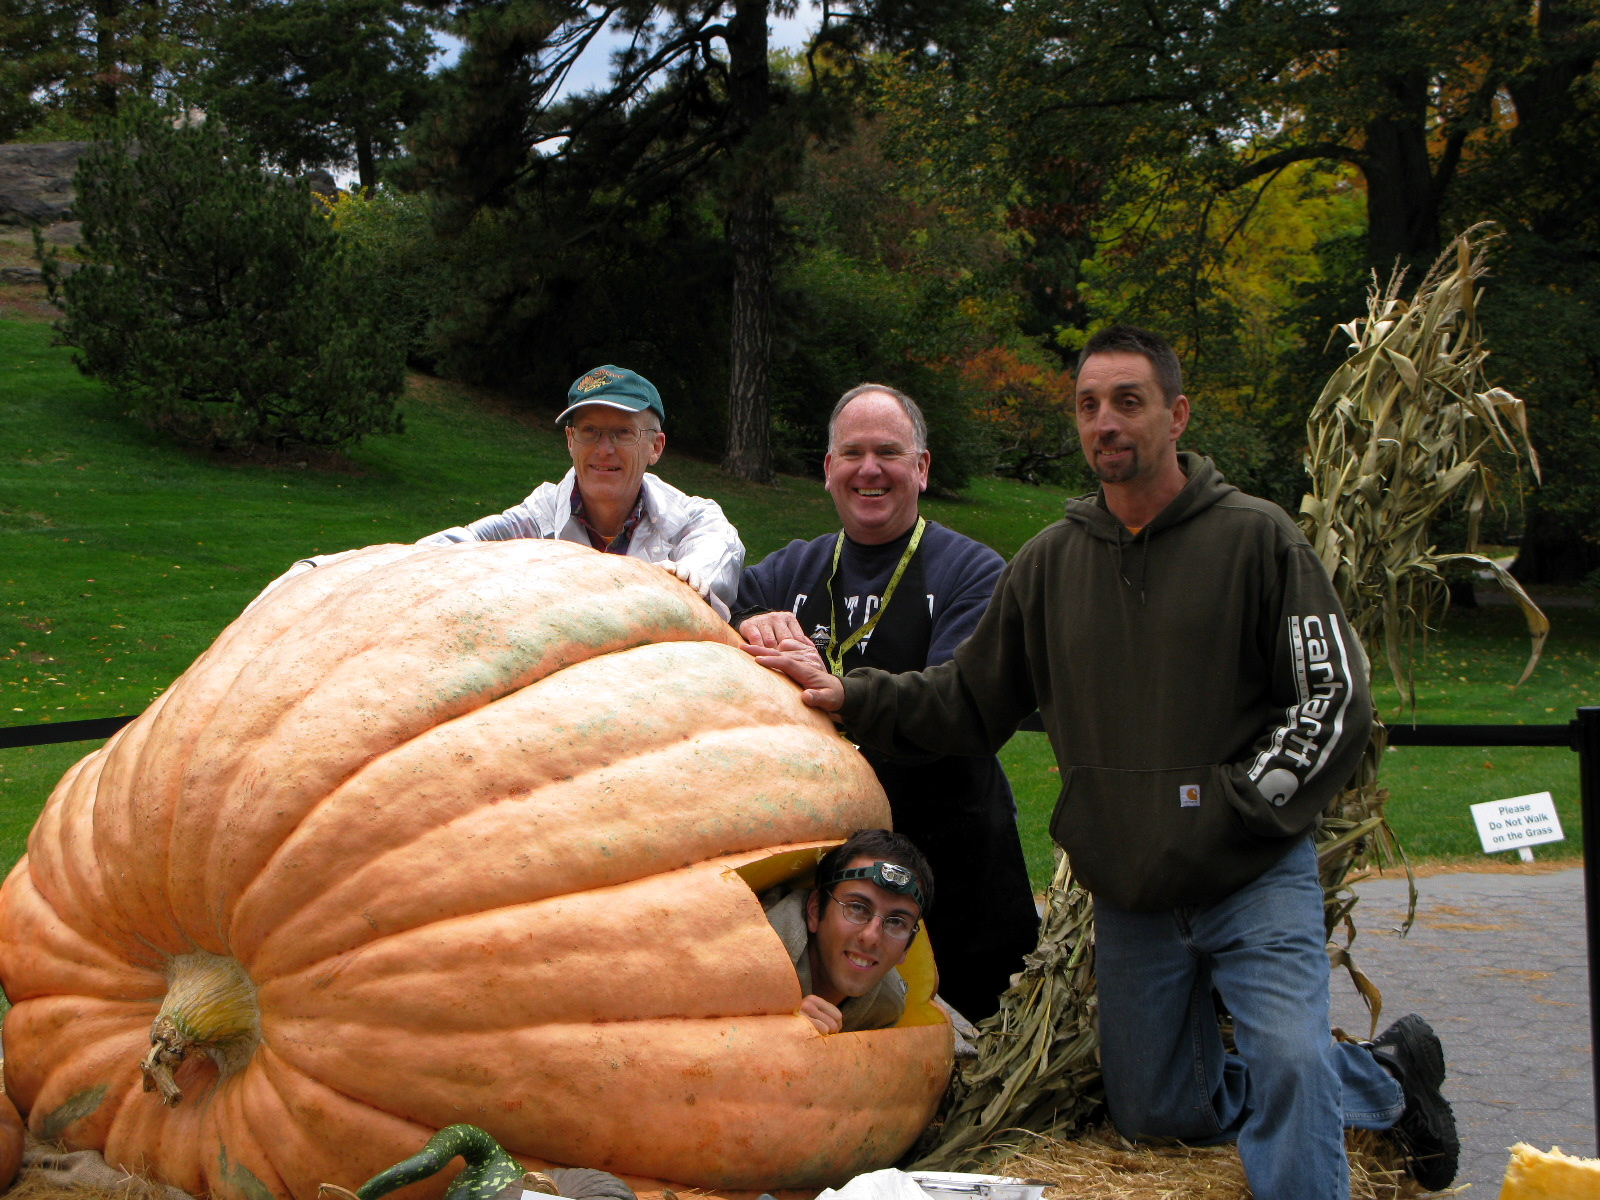 Representatives from SNEGPG (Southern New England Giant Pumkin Growers association) pose with grower Steve Connolly and pumpkin Carver Scott Cullyl.